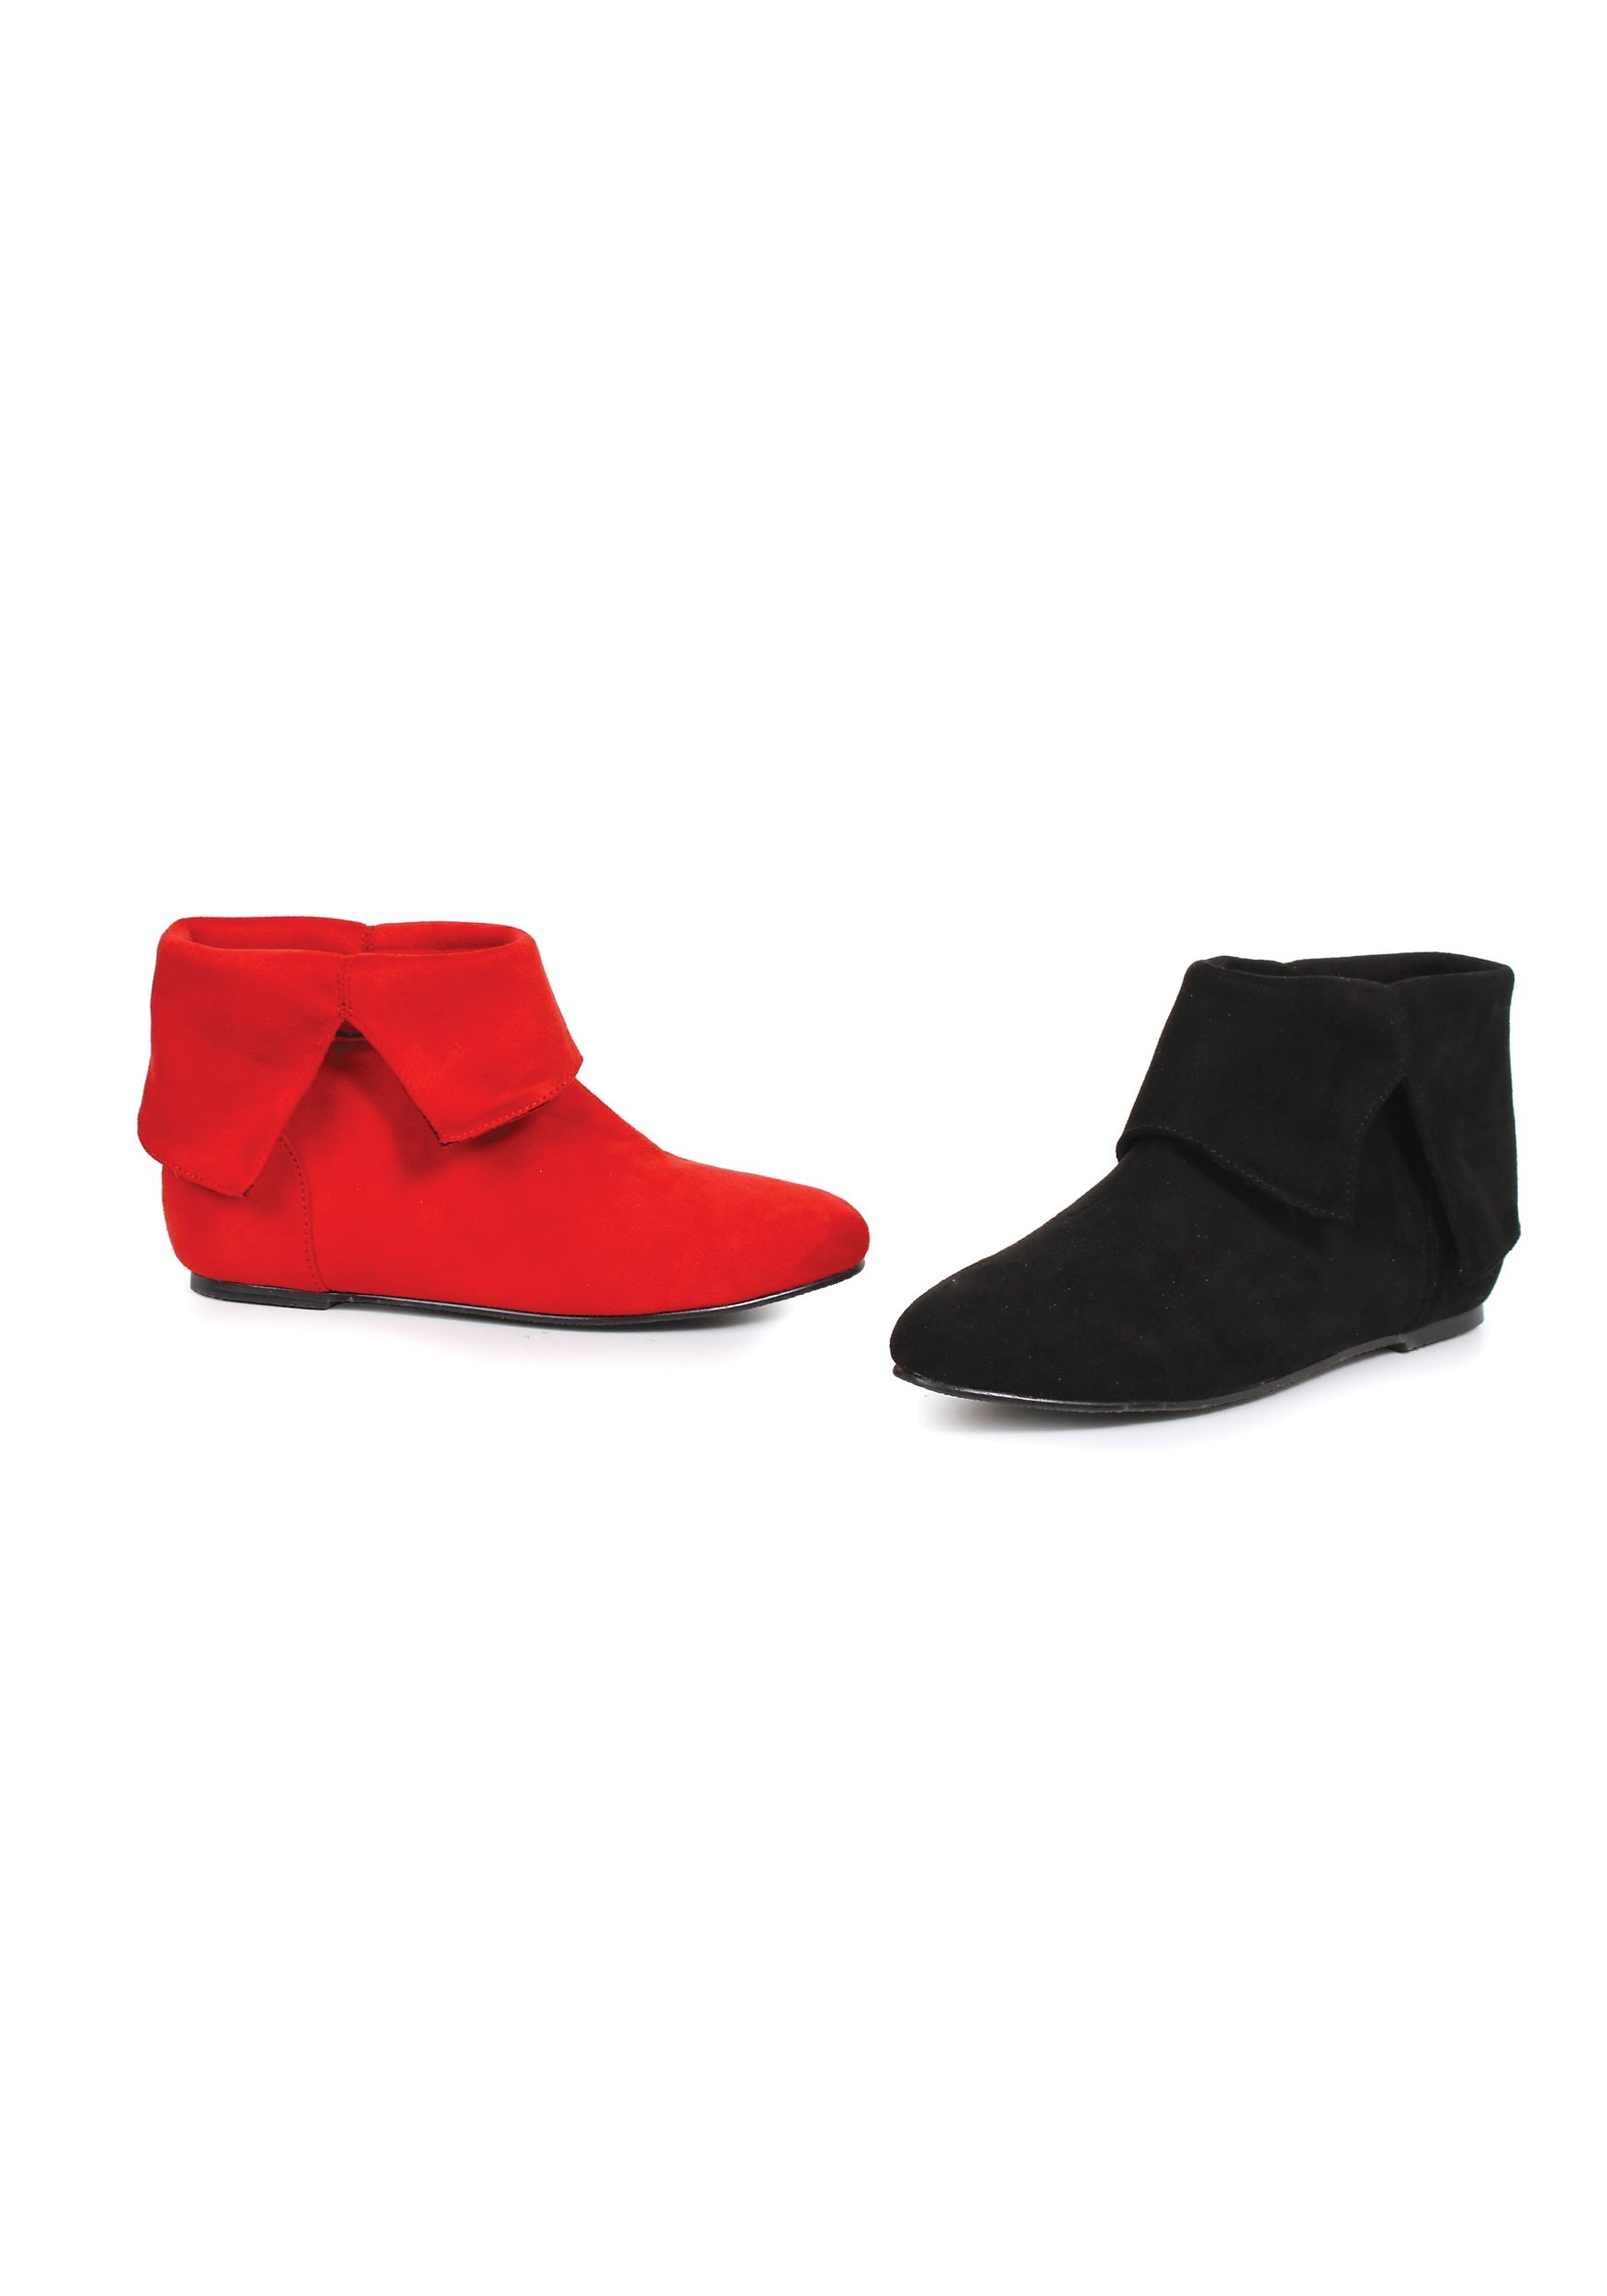 Red and Black Girls Harlequin Boots